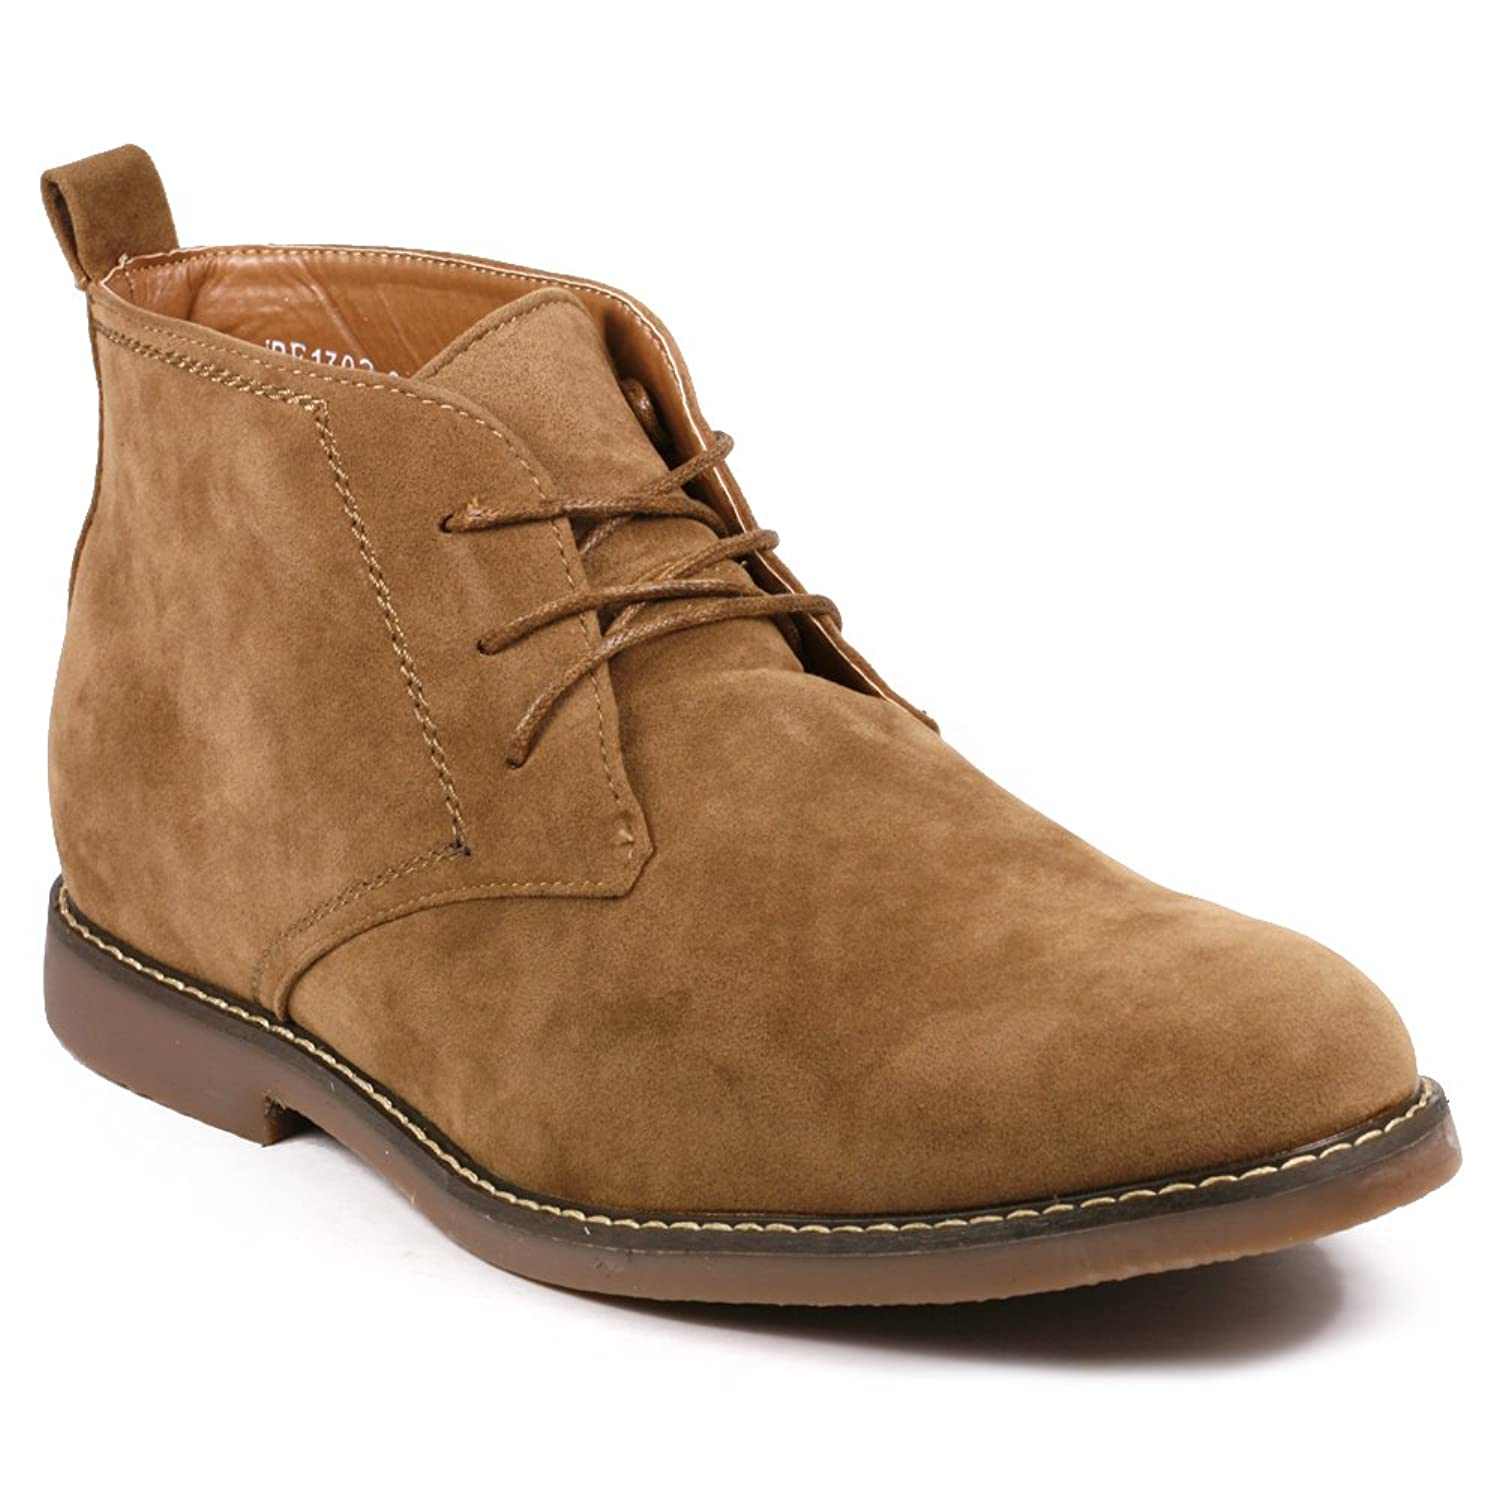 Amazon Best Sellers: Best Men's Chukka Boots